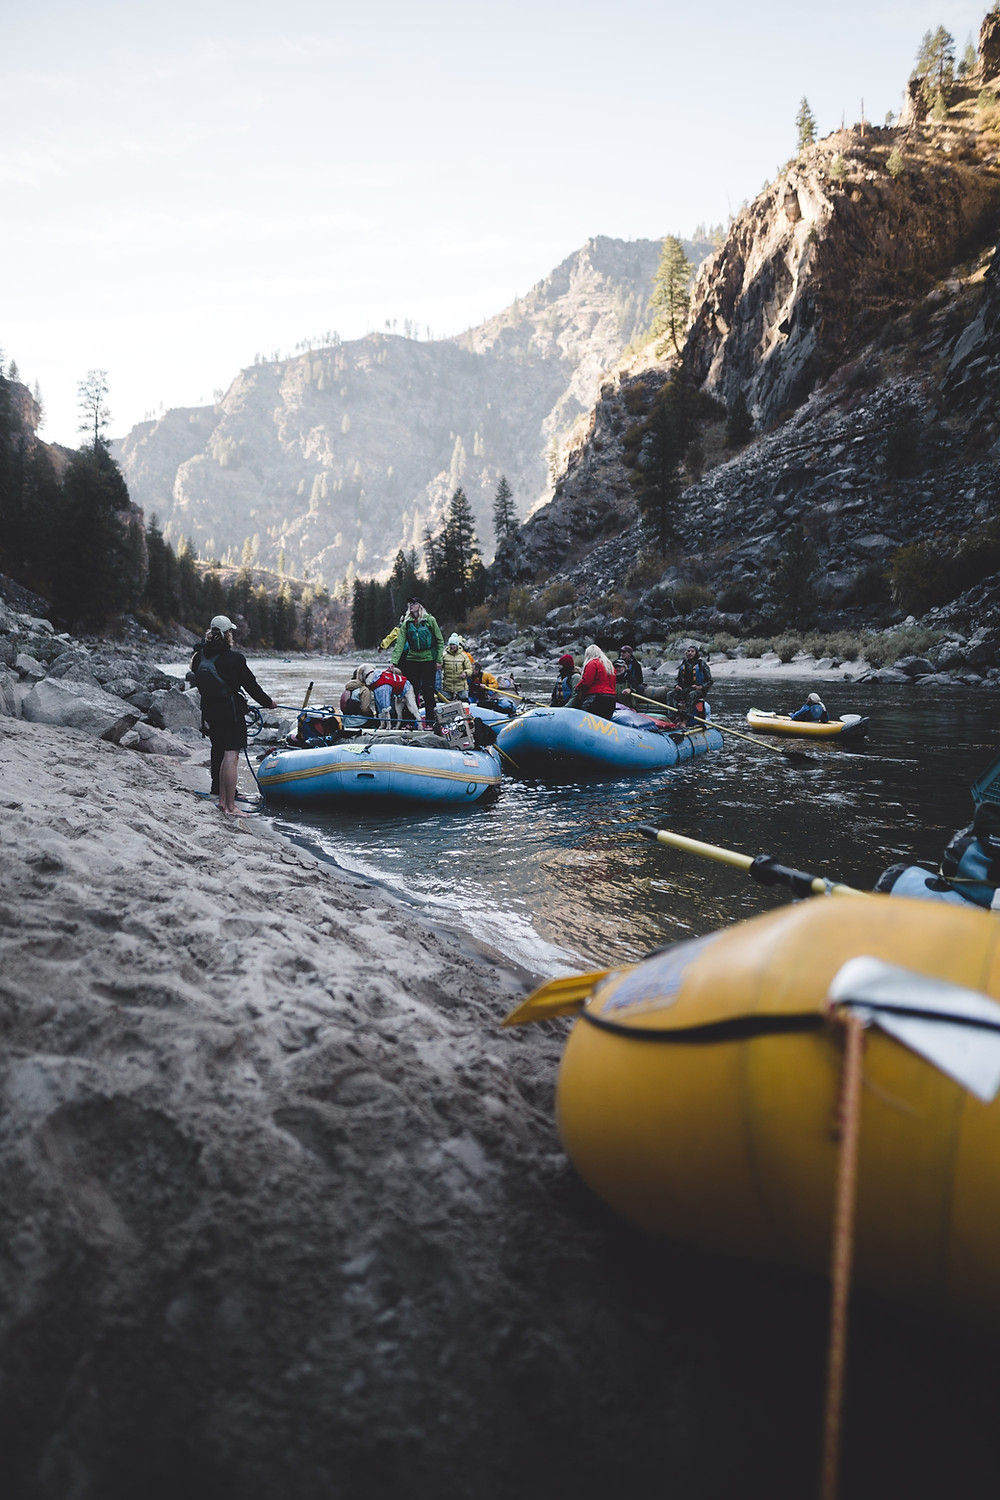 Group of people rafting a river